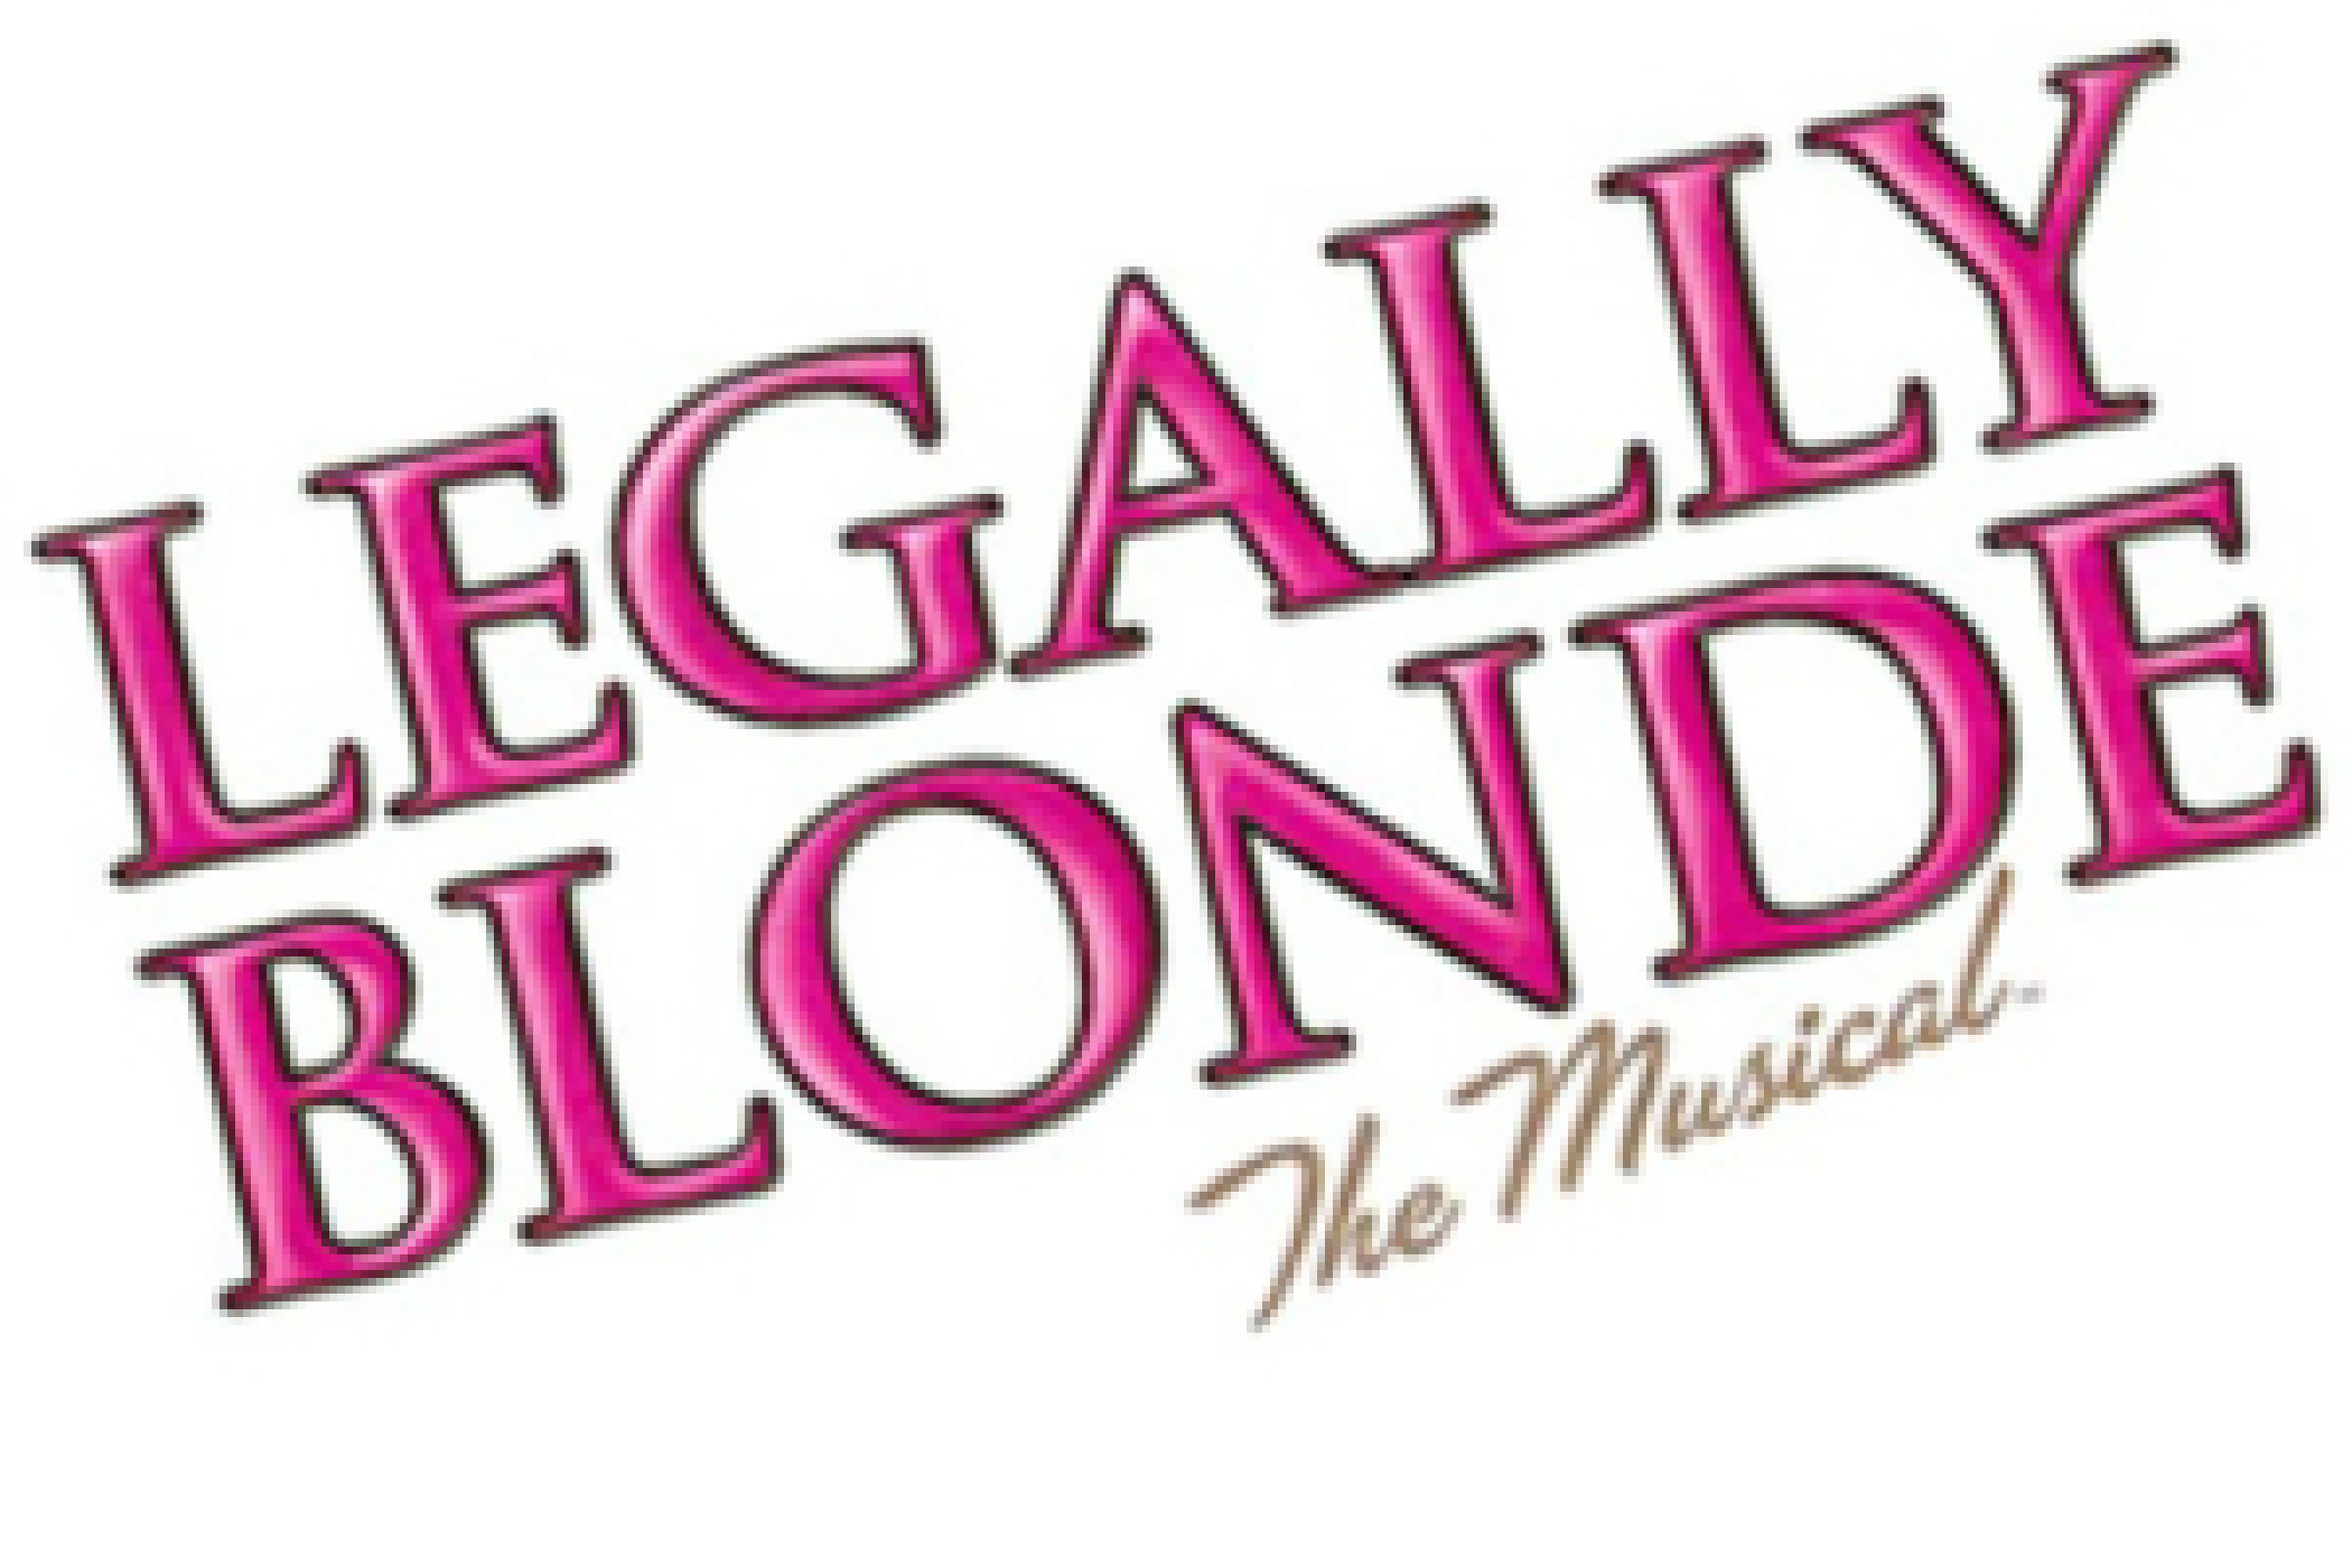 Legally Blonde: The Musical (Closed January 28, 2018.